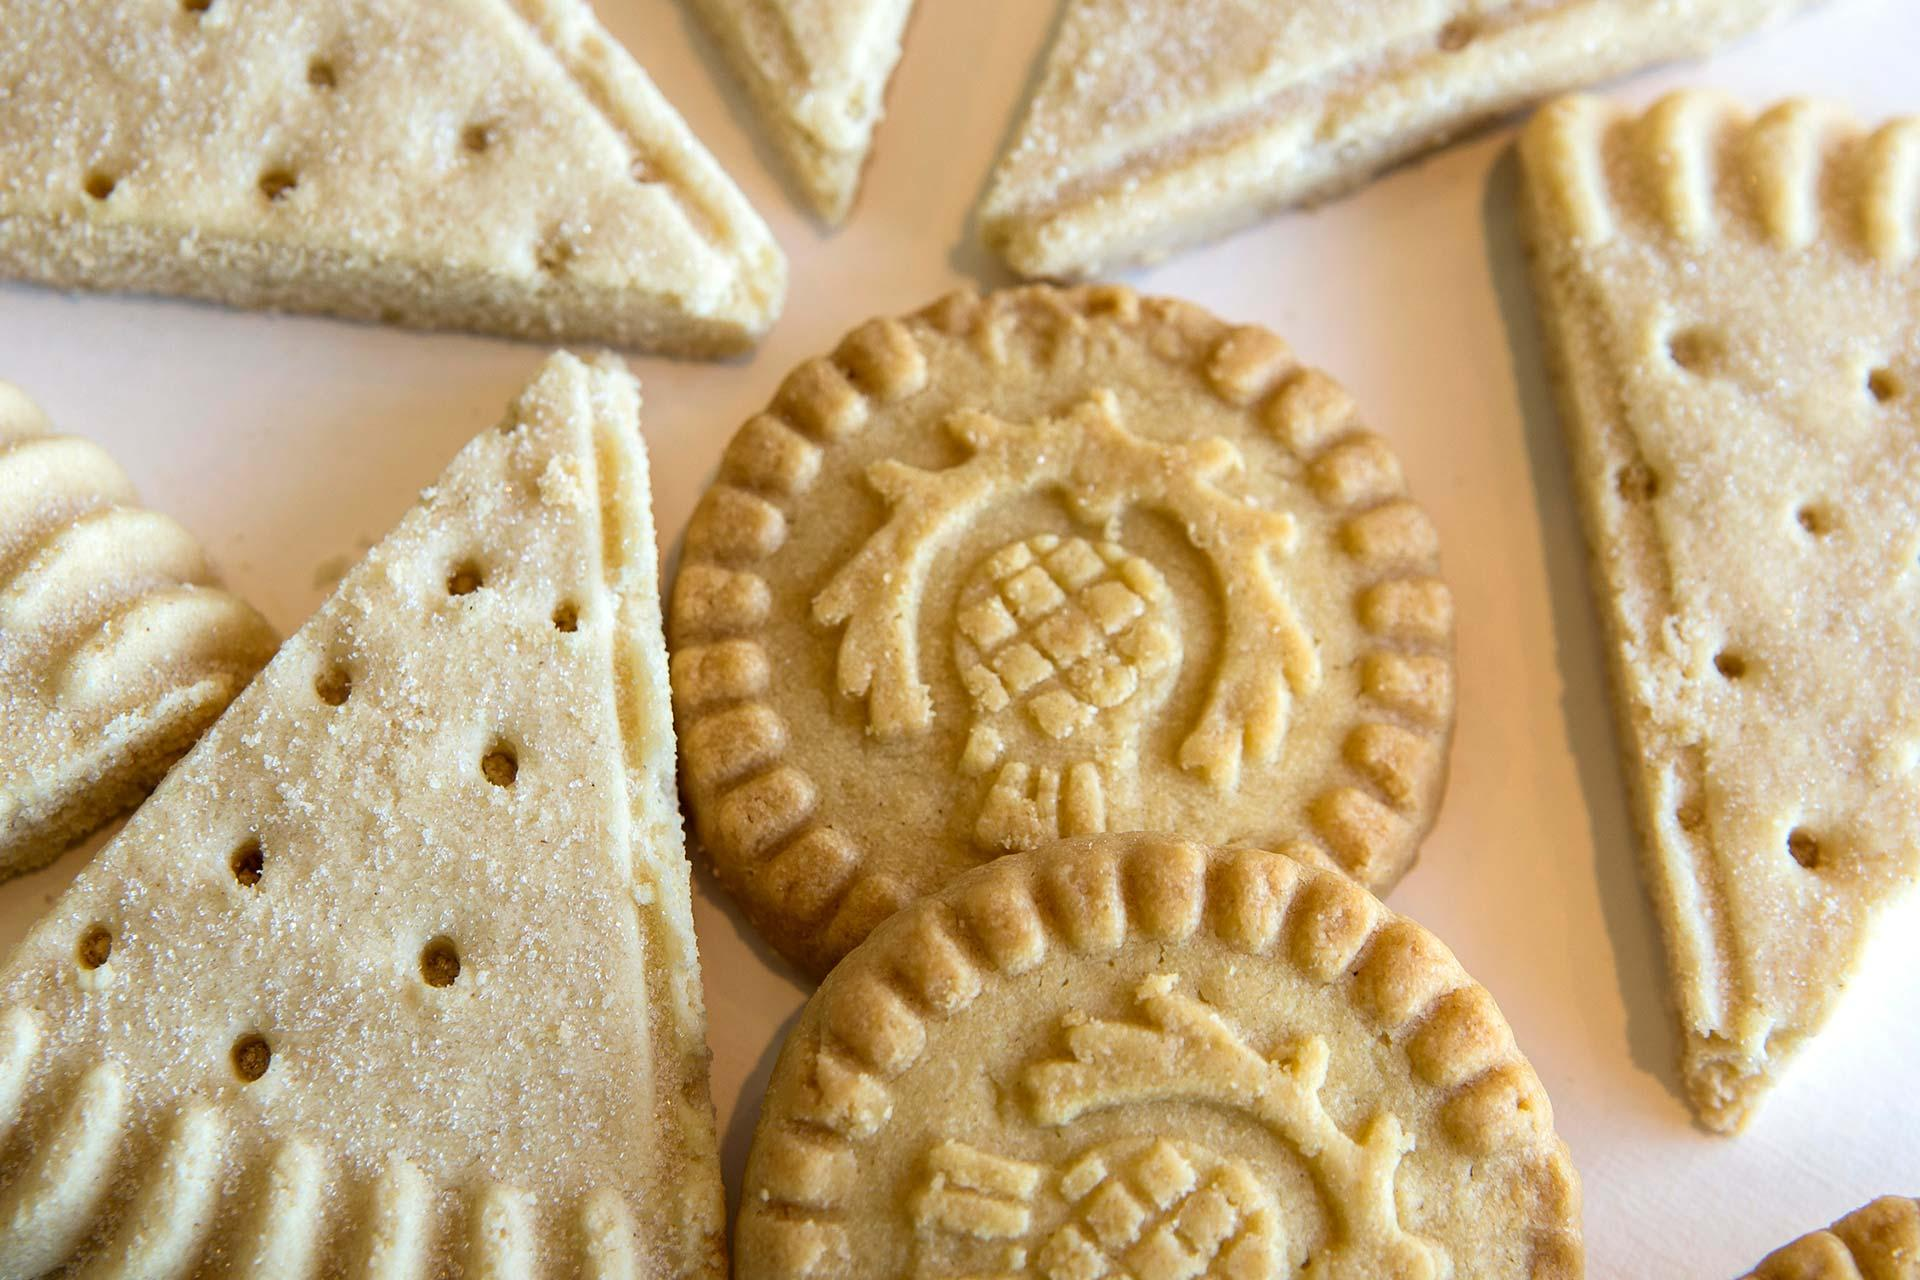 scottish scotland foods traditional drink famous shortbread visitscotland edinburgh standard info